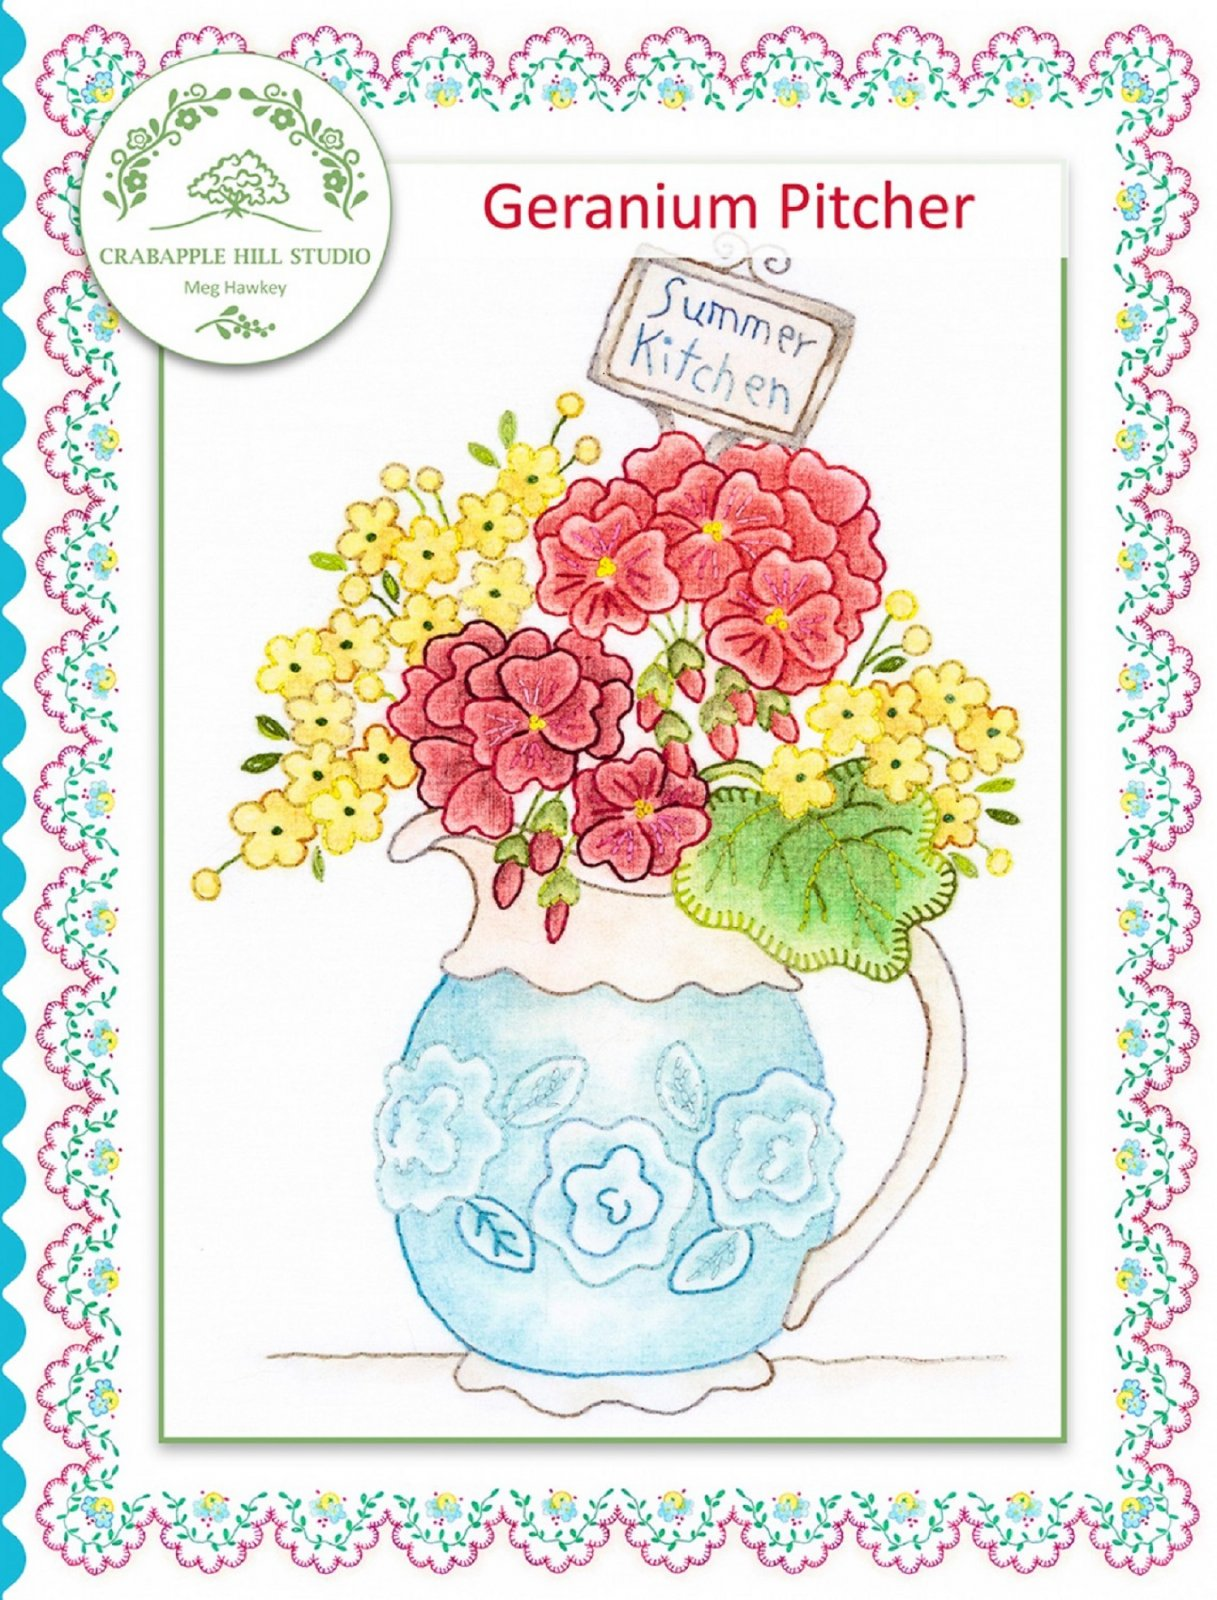 Crabapple Hill Summer Kitchen Geranium Pitcher Pattern with Cosmos Floss Kit